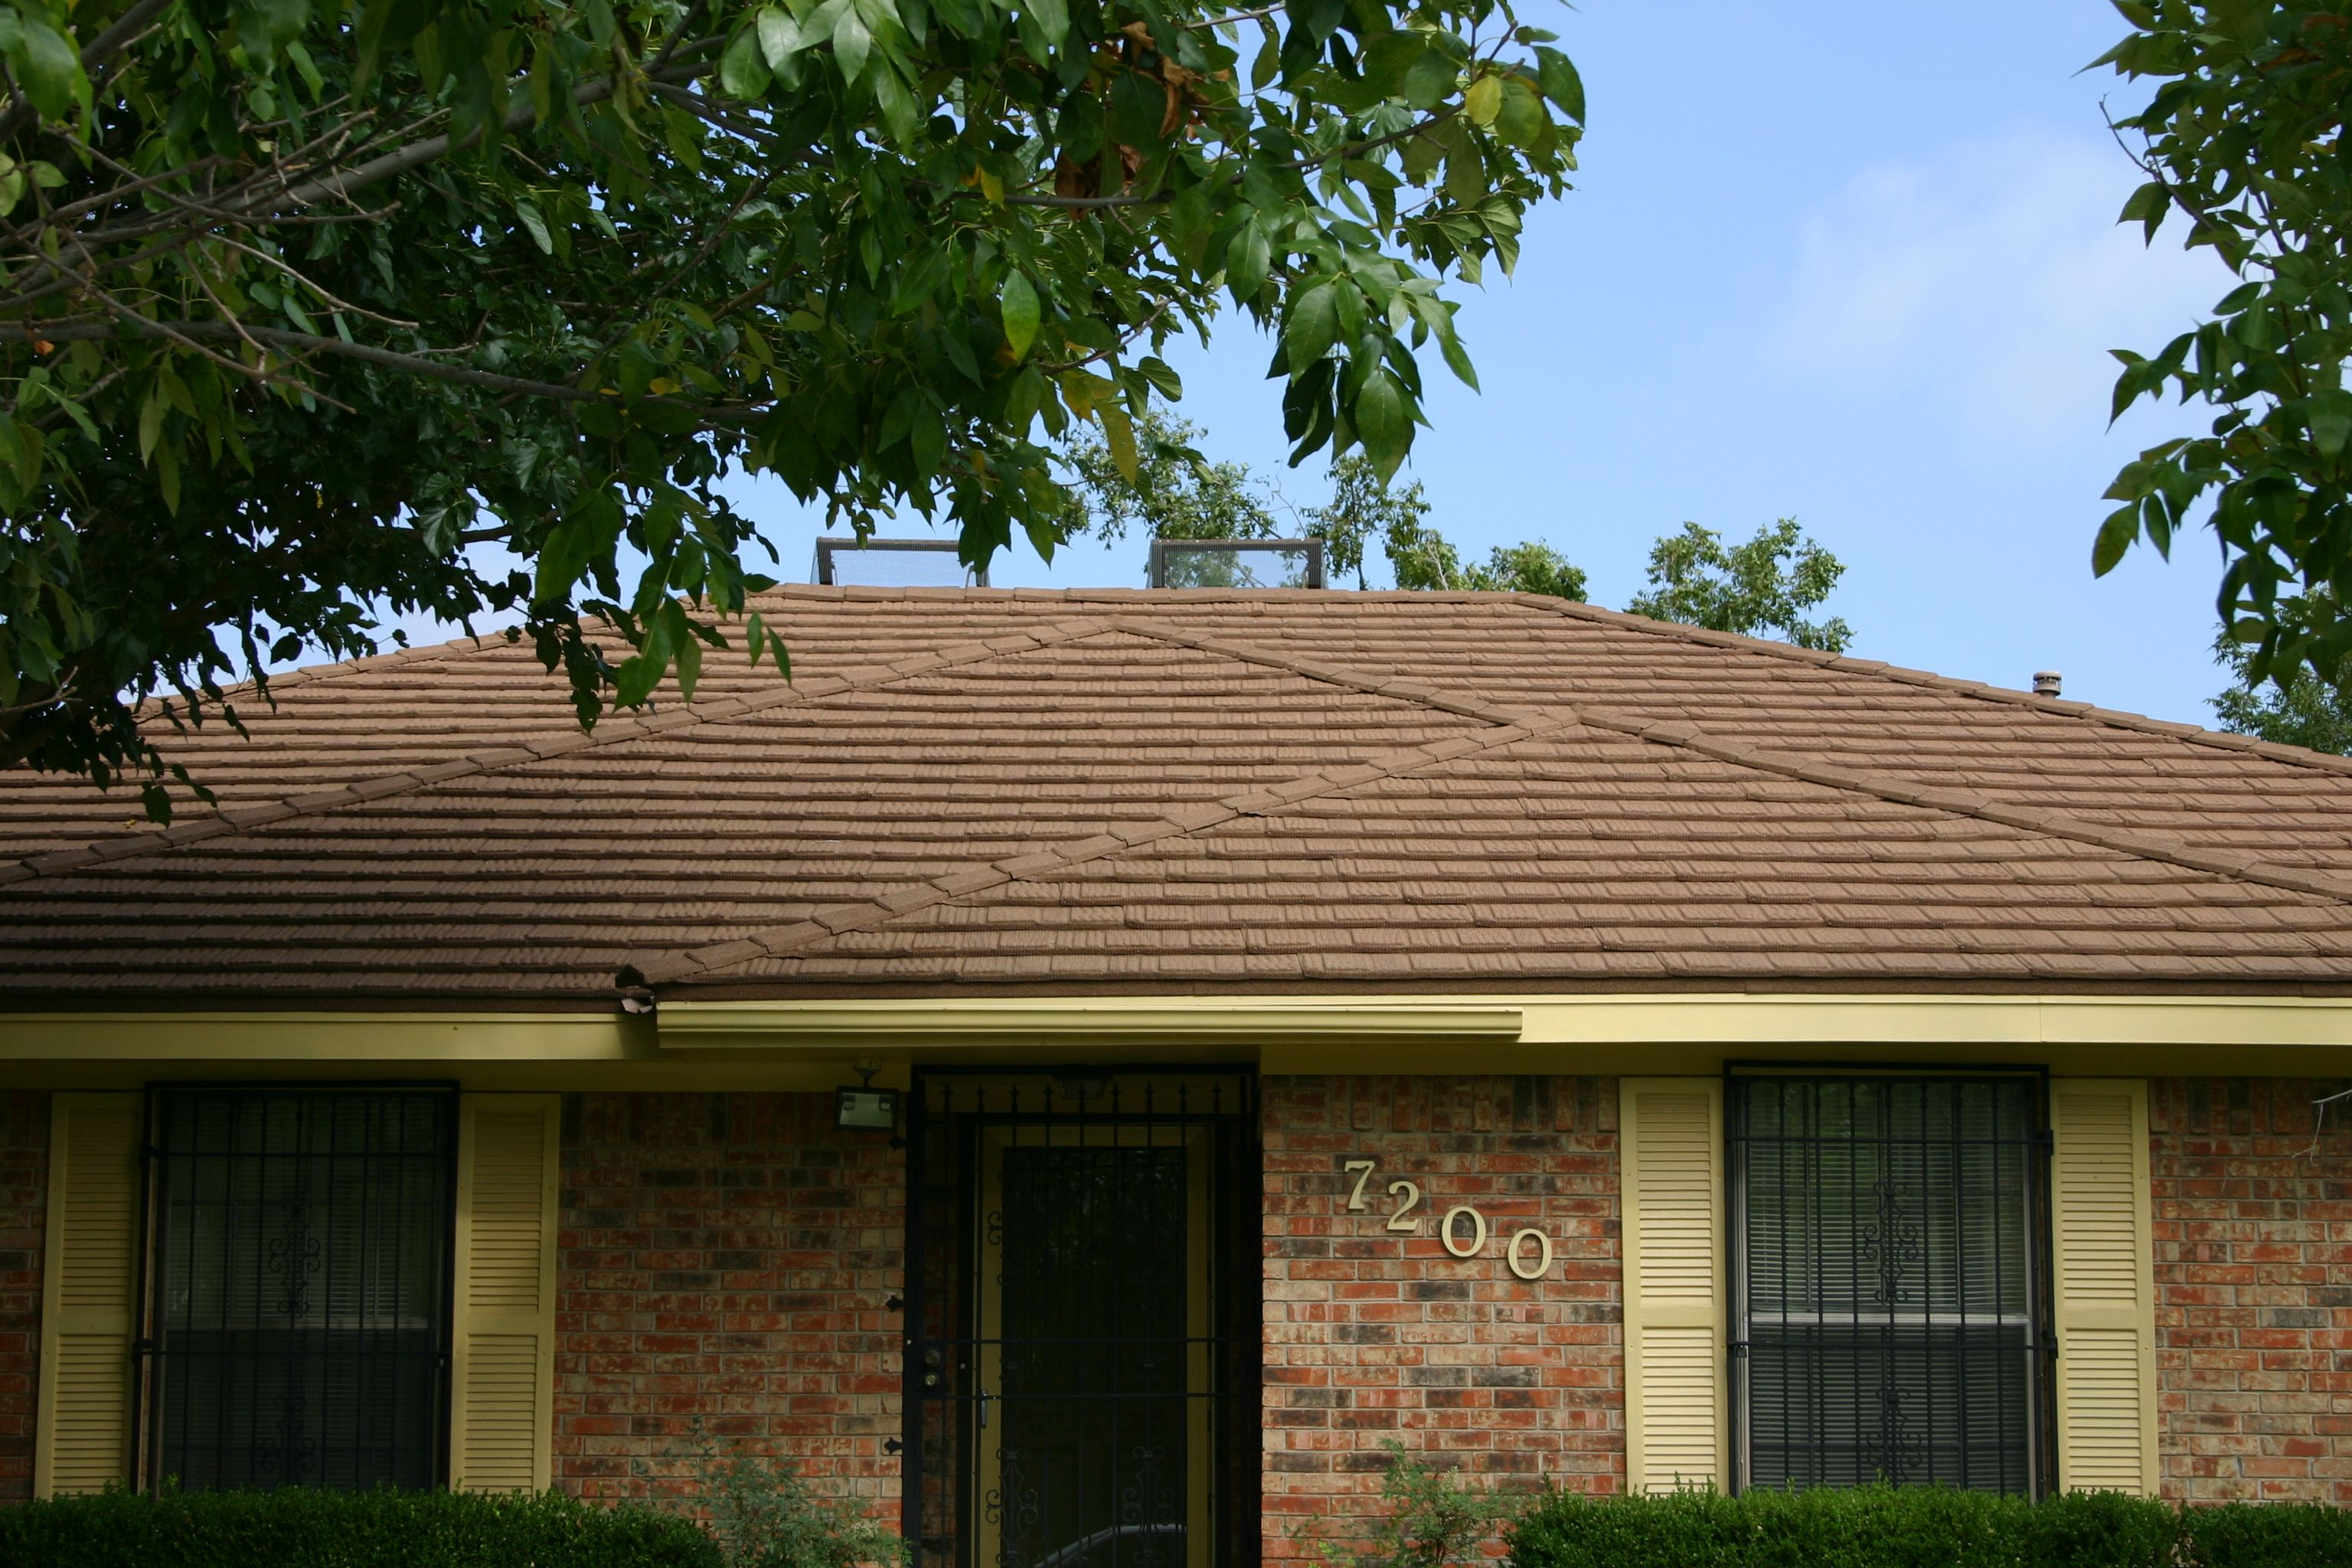 Roofing Reroofing Roofing Residential